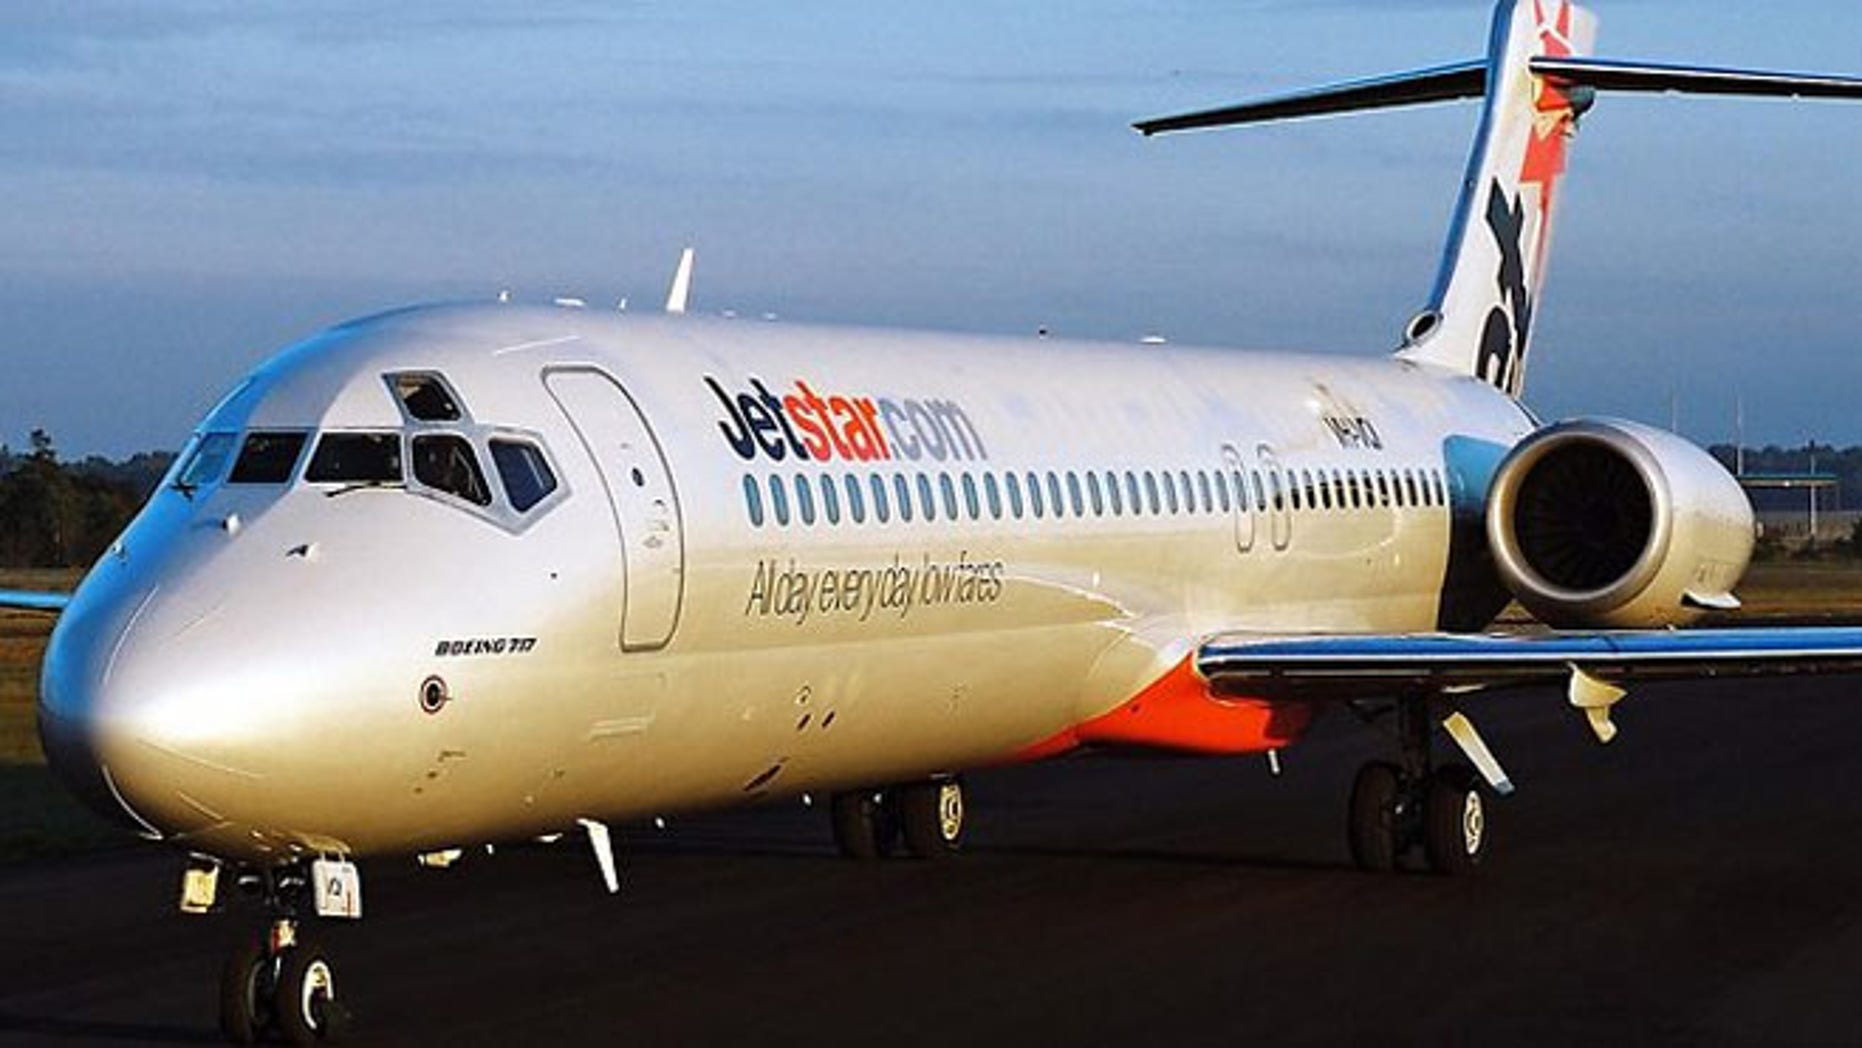 Australian budget airline, Jetstar, pulled a woman with cerebral palsy from a flight because it believed she could not understand instructions.